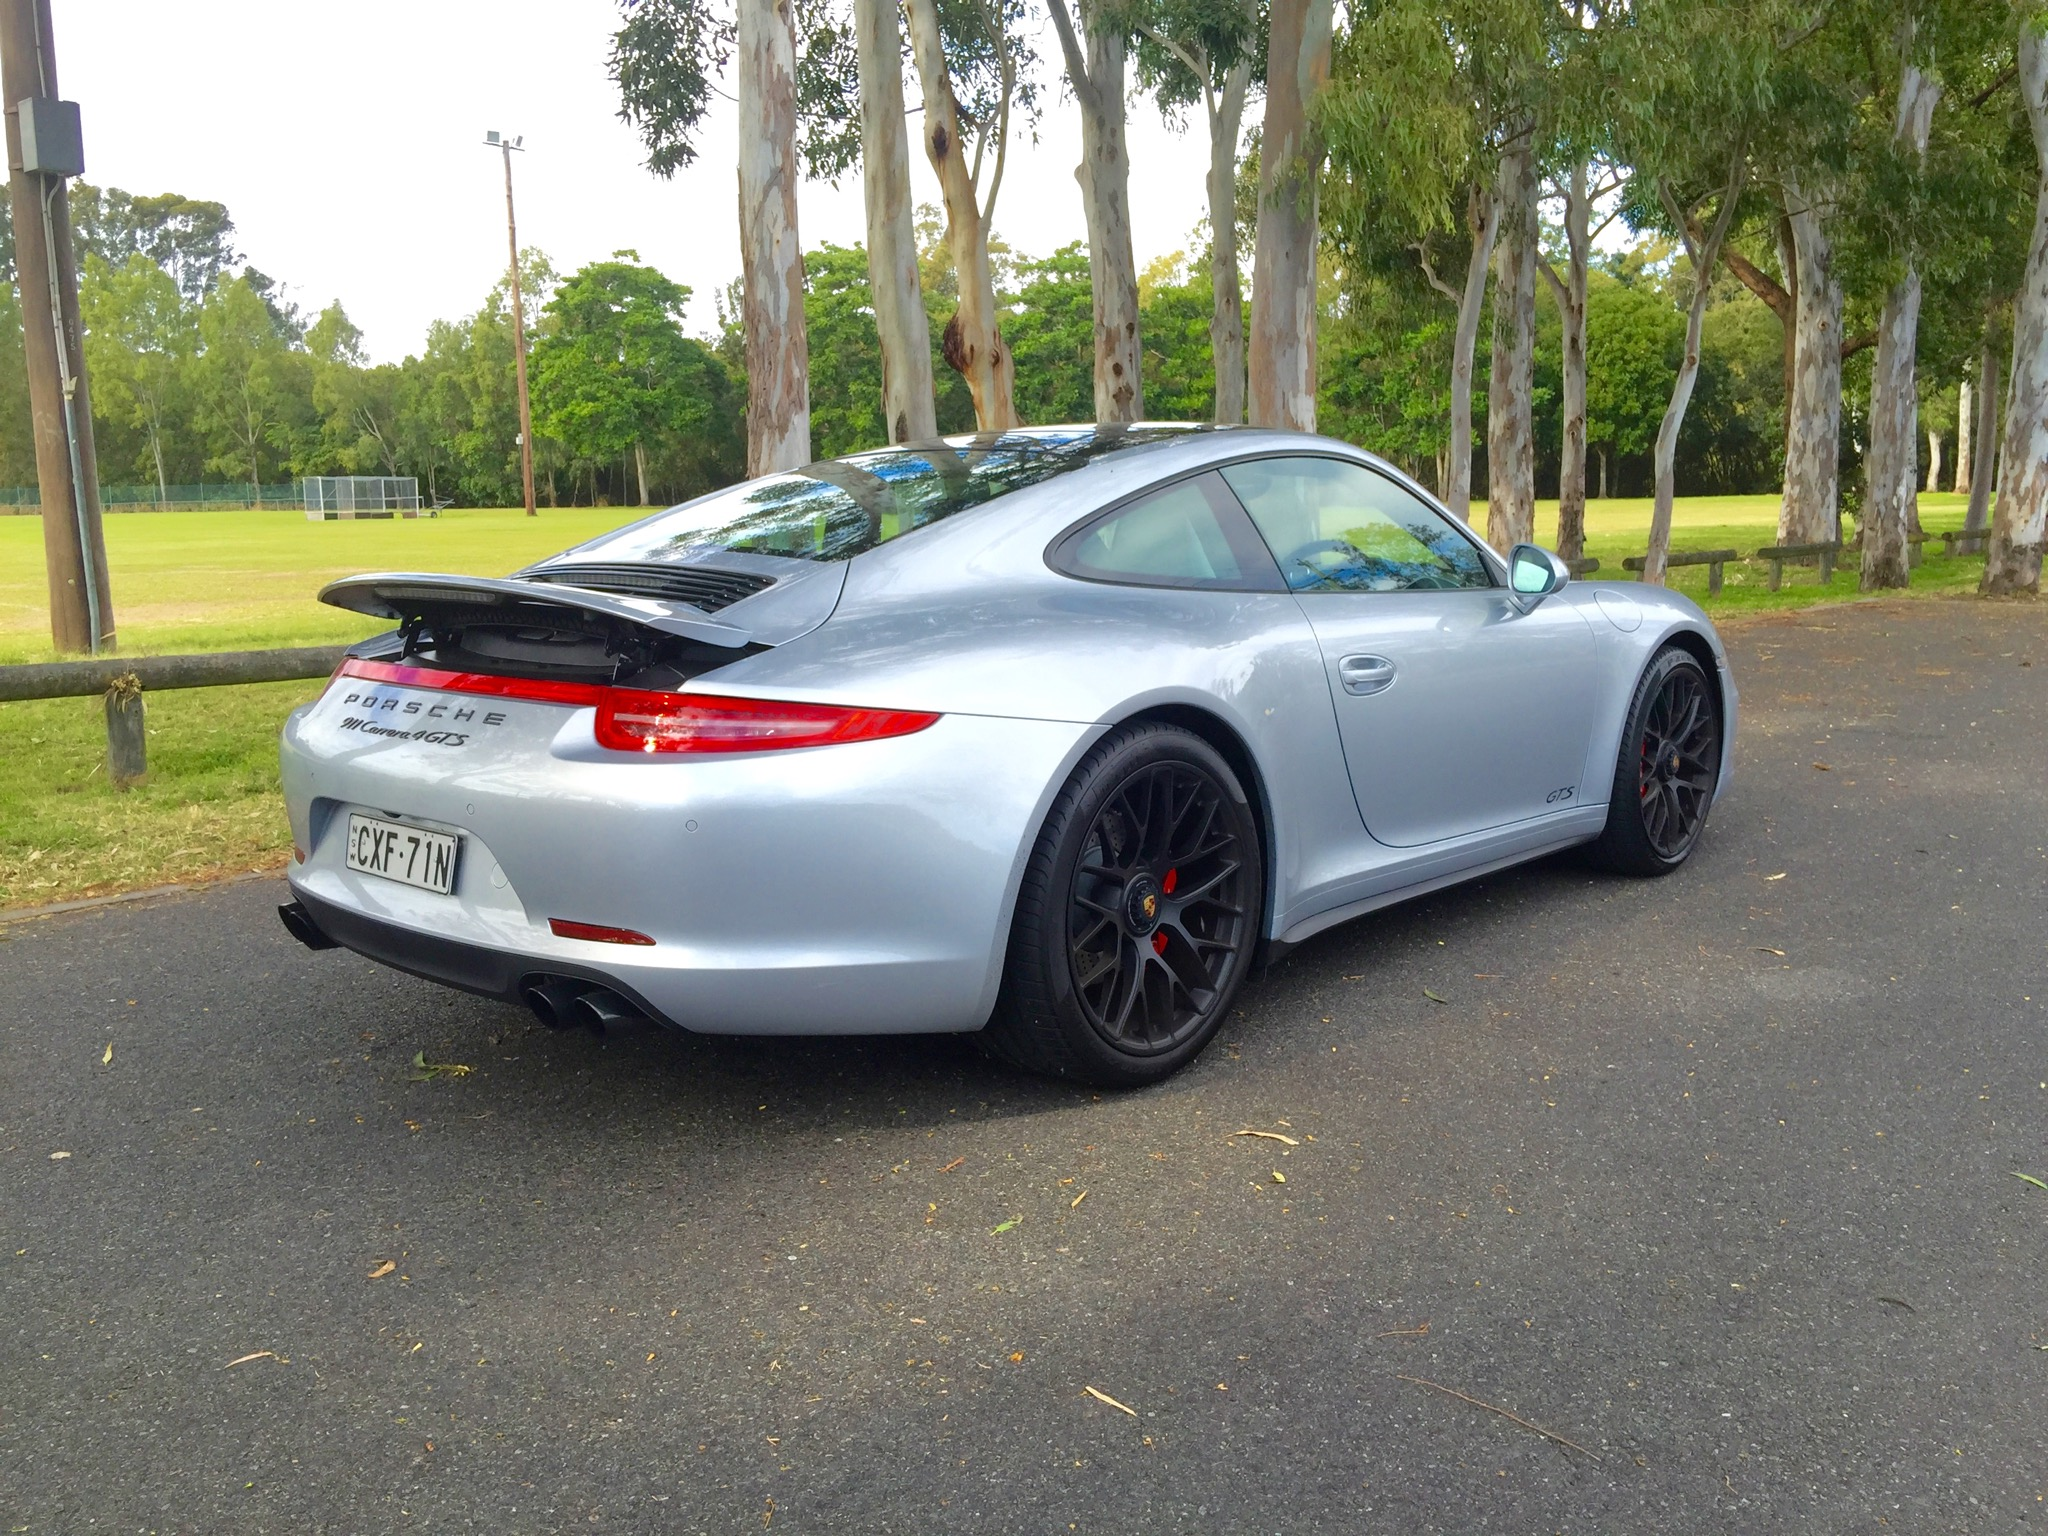 2019 Porsche 911 Carrera 4 GTS photo - 1